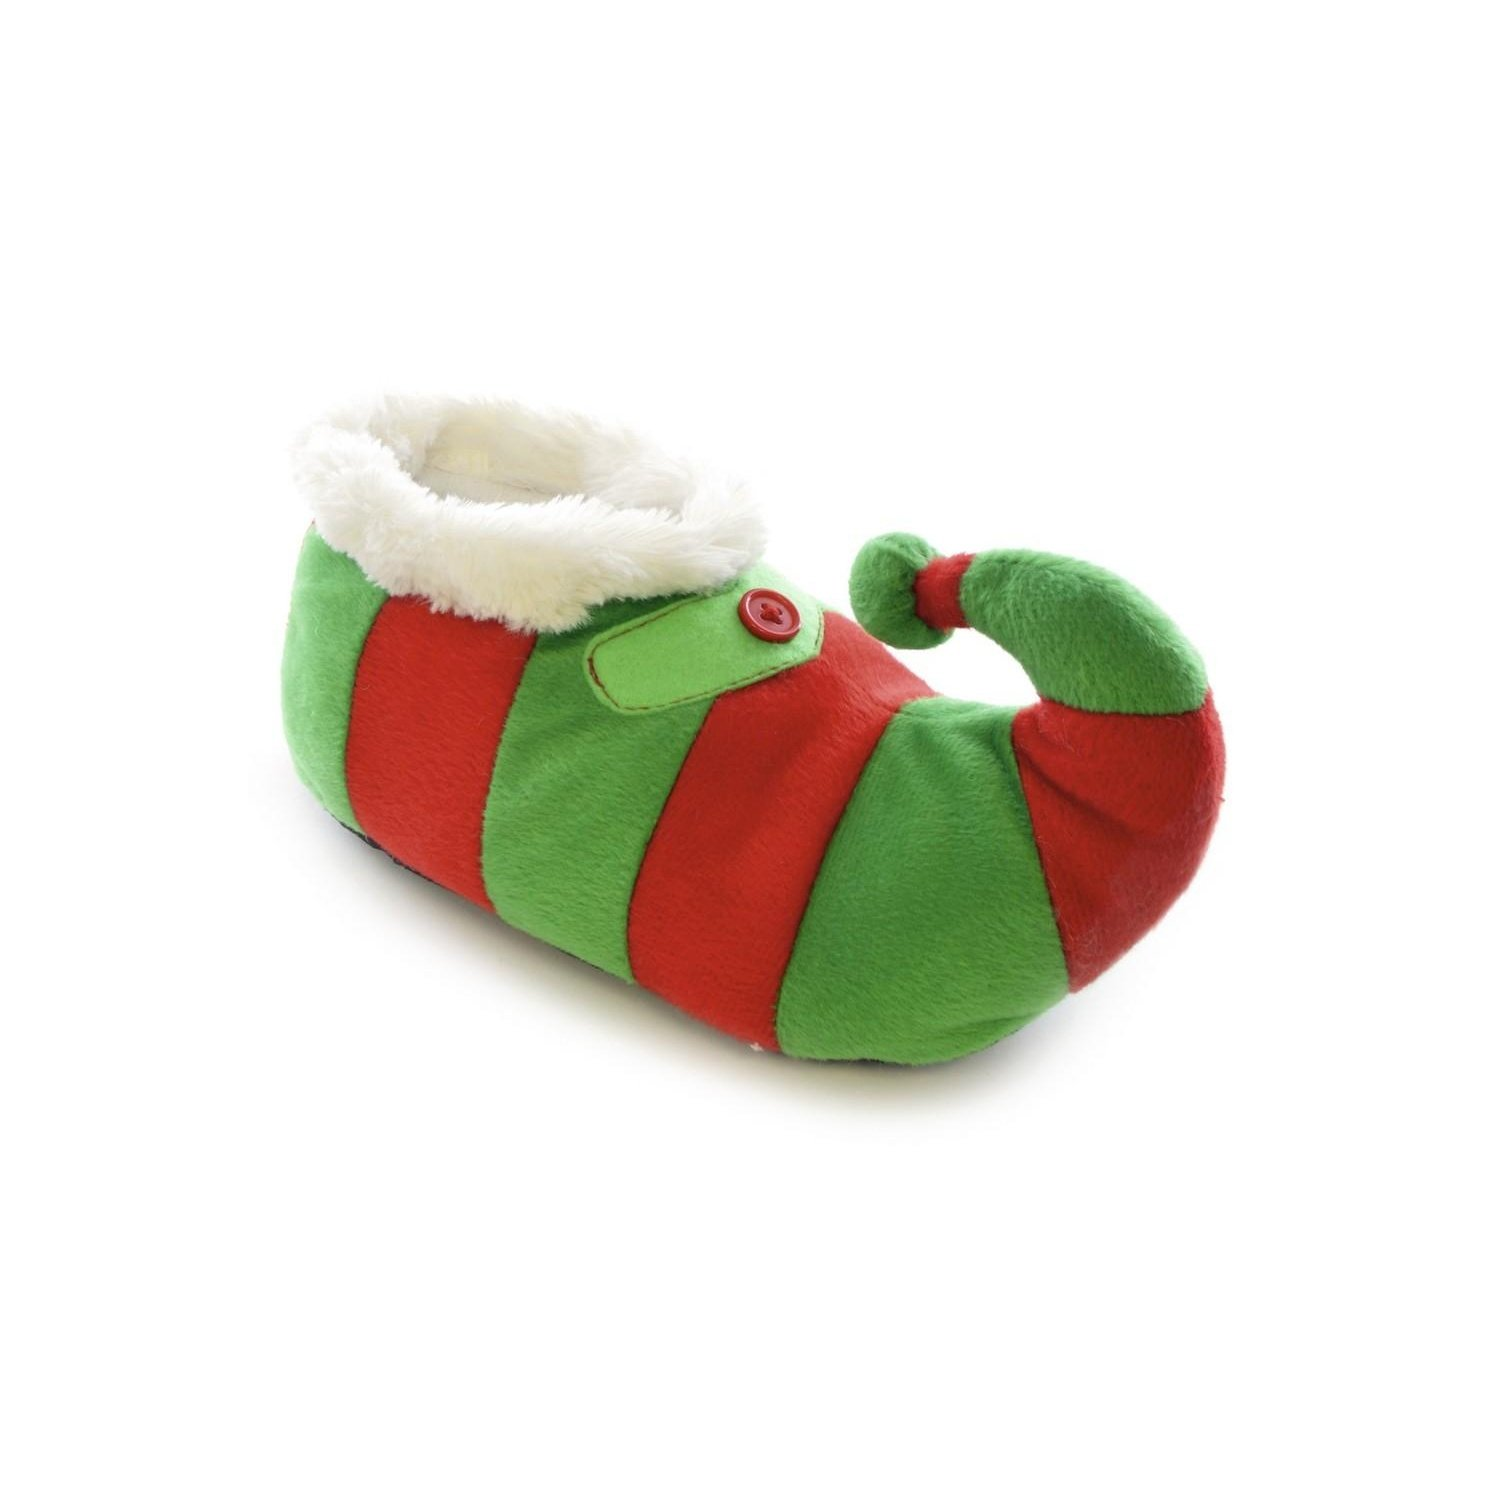 Amazon | Childrens/Kids Big Boys Striped Elf Design Novelty Christmas  Slippers US Child 1213 Green/Red/White | Slippers